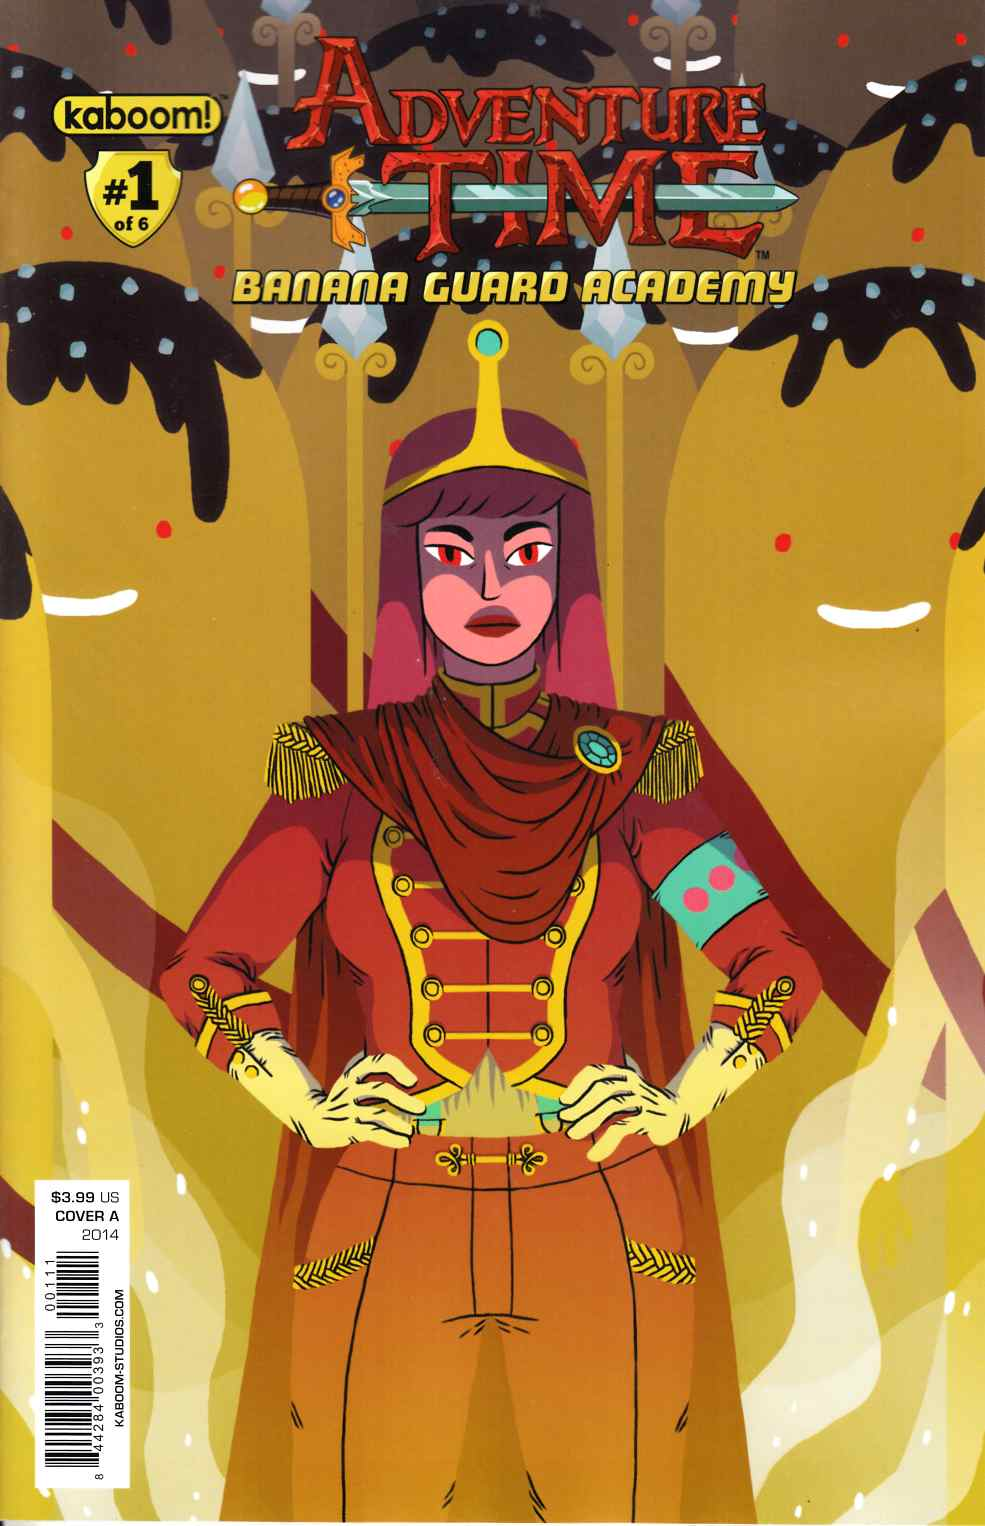 Adventure Time Banana Guard Academy #1 Cover A [Comic] THUMBNAIL